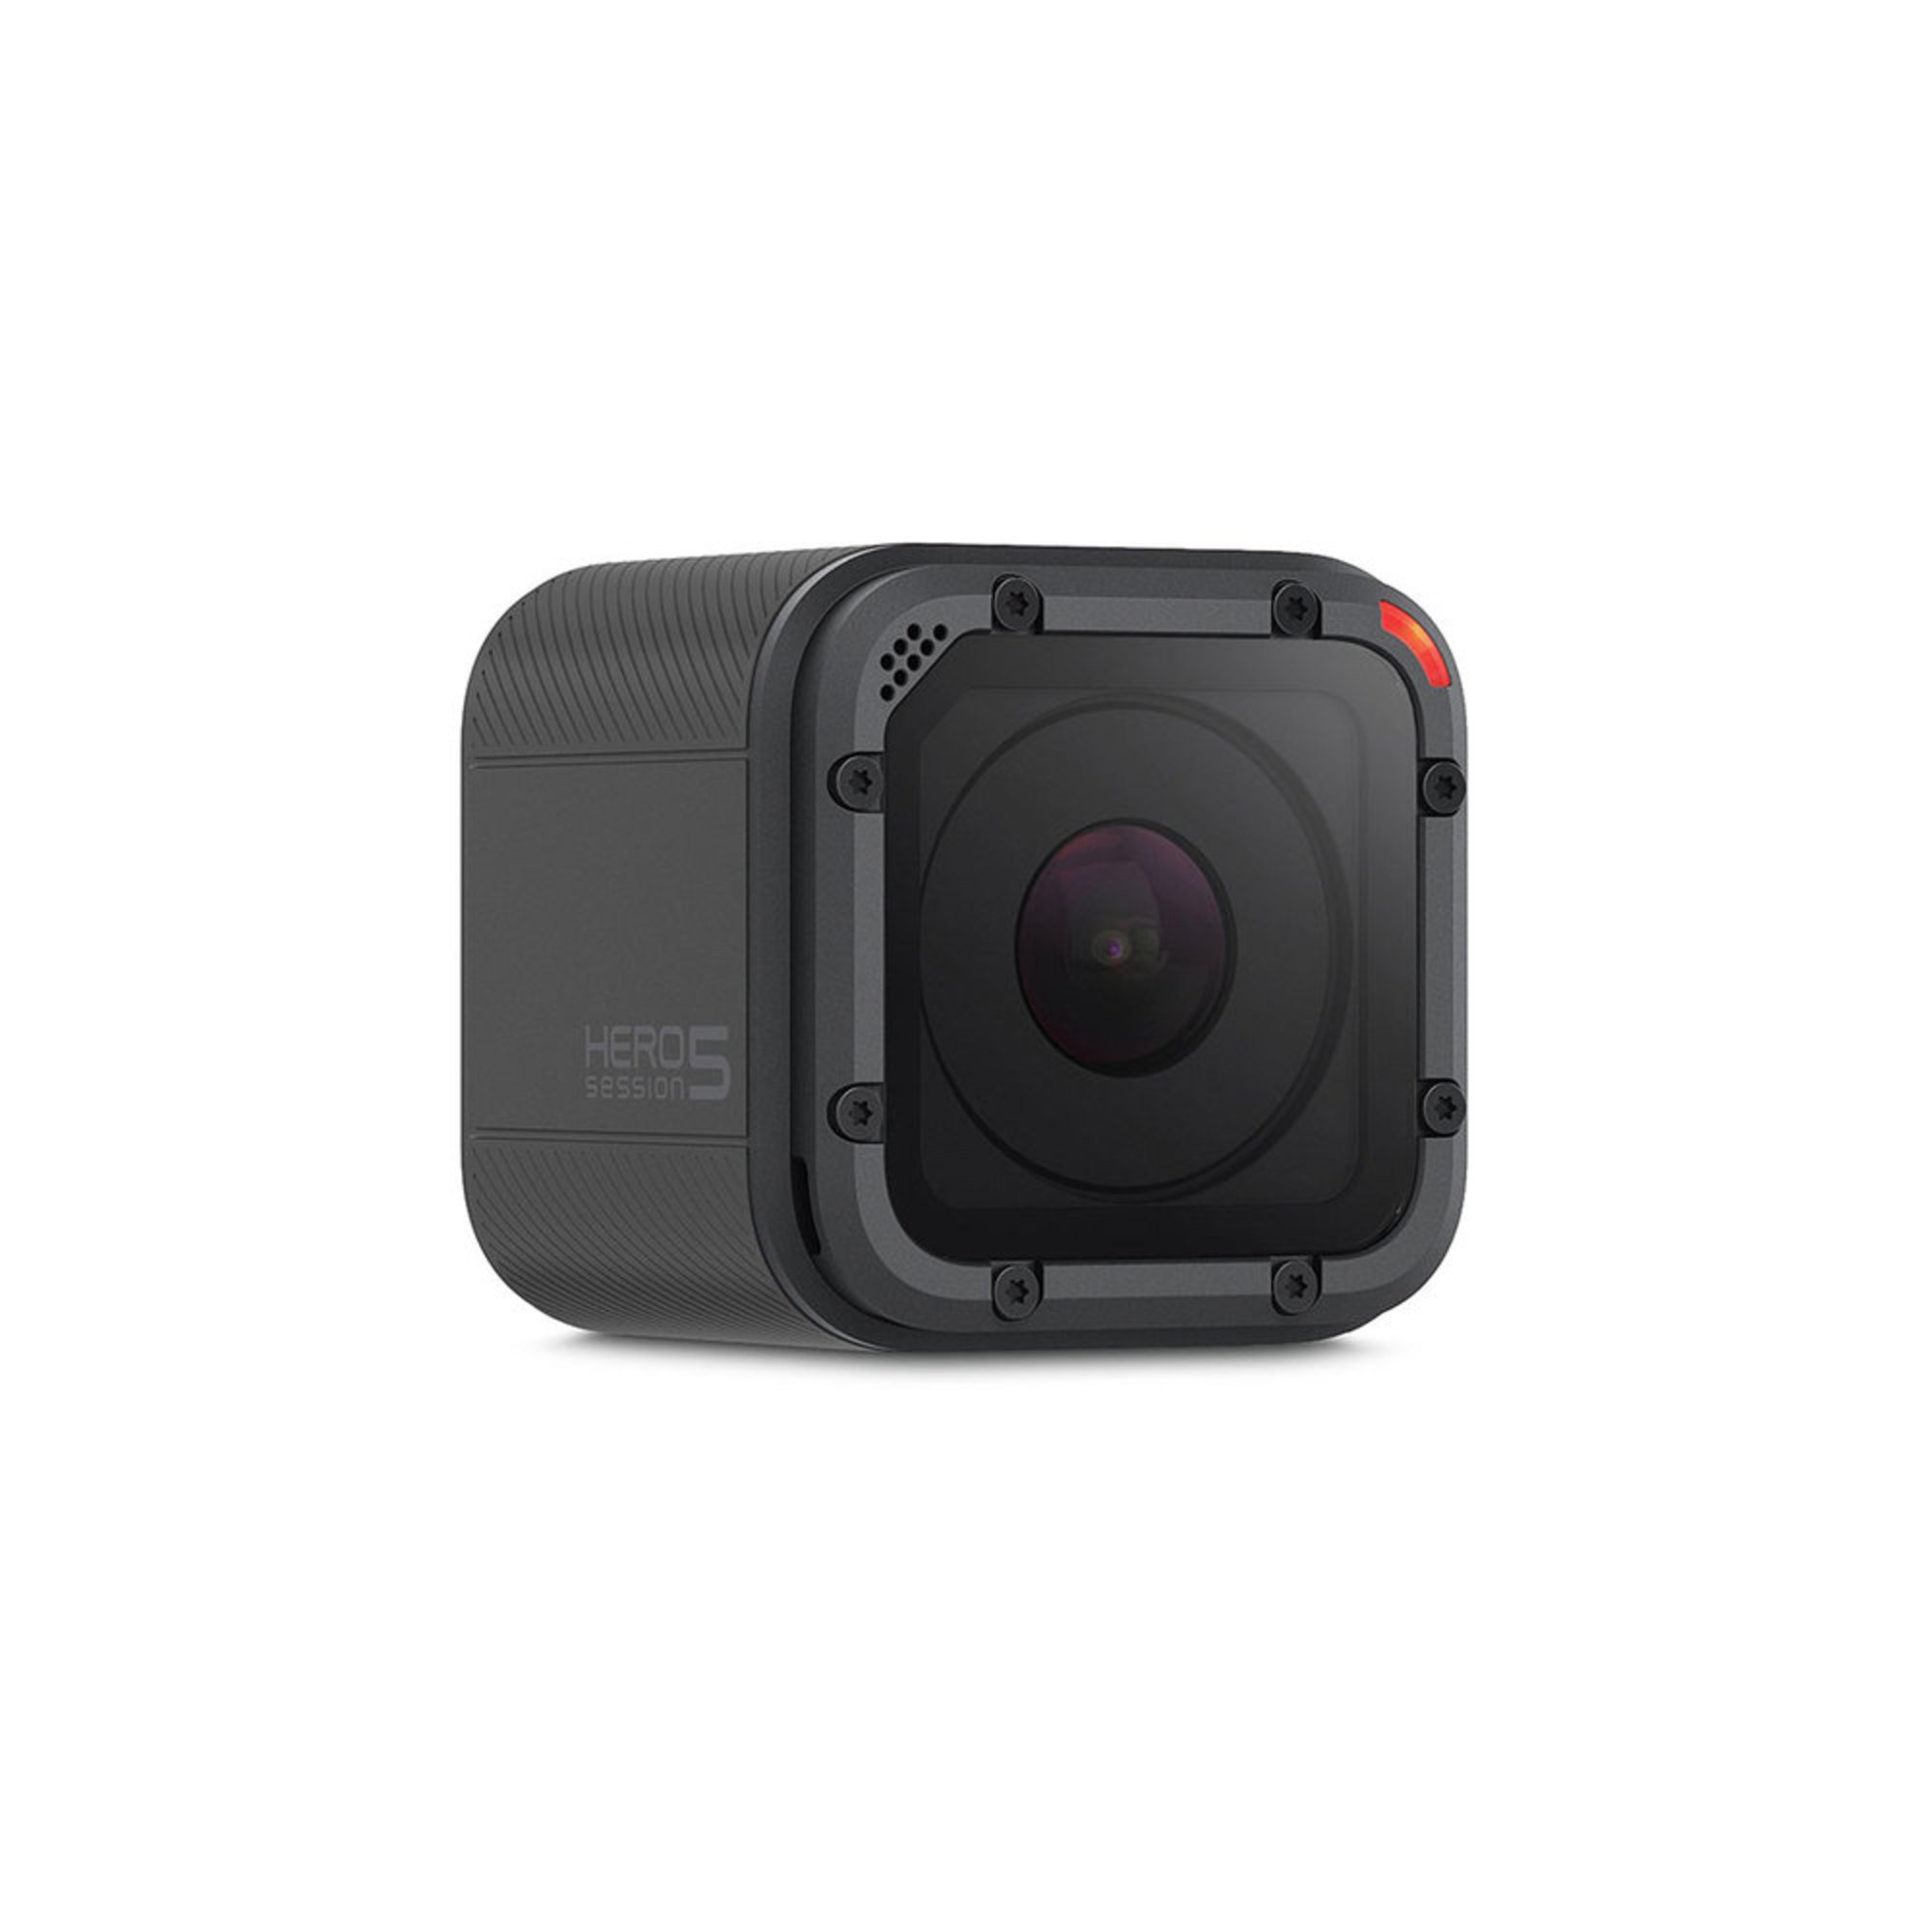 Gopro Hero5 Session Action Camera/camcorder - 4k